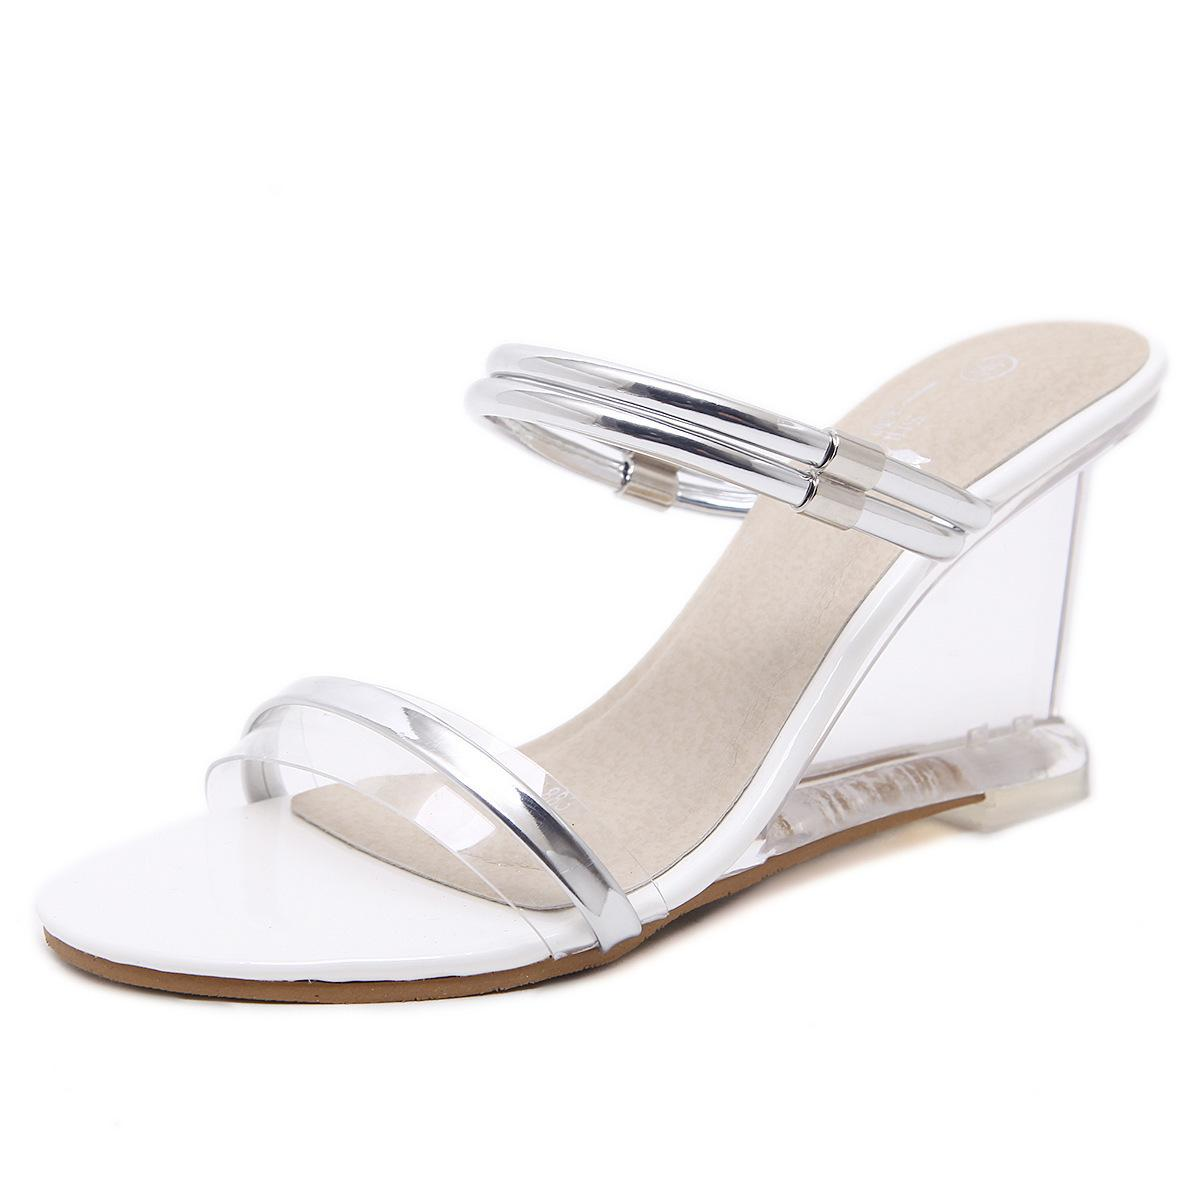 0cde5a6edd Dress Poadisfoo Women Wedge 2019 New Sexy Crystal Transparent High Heeled  Shoes, Golden Slopes And Sandals.Lfd 833 1 Mens Shoes Loafers From Ru33, ...